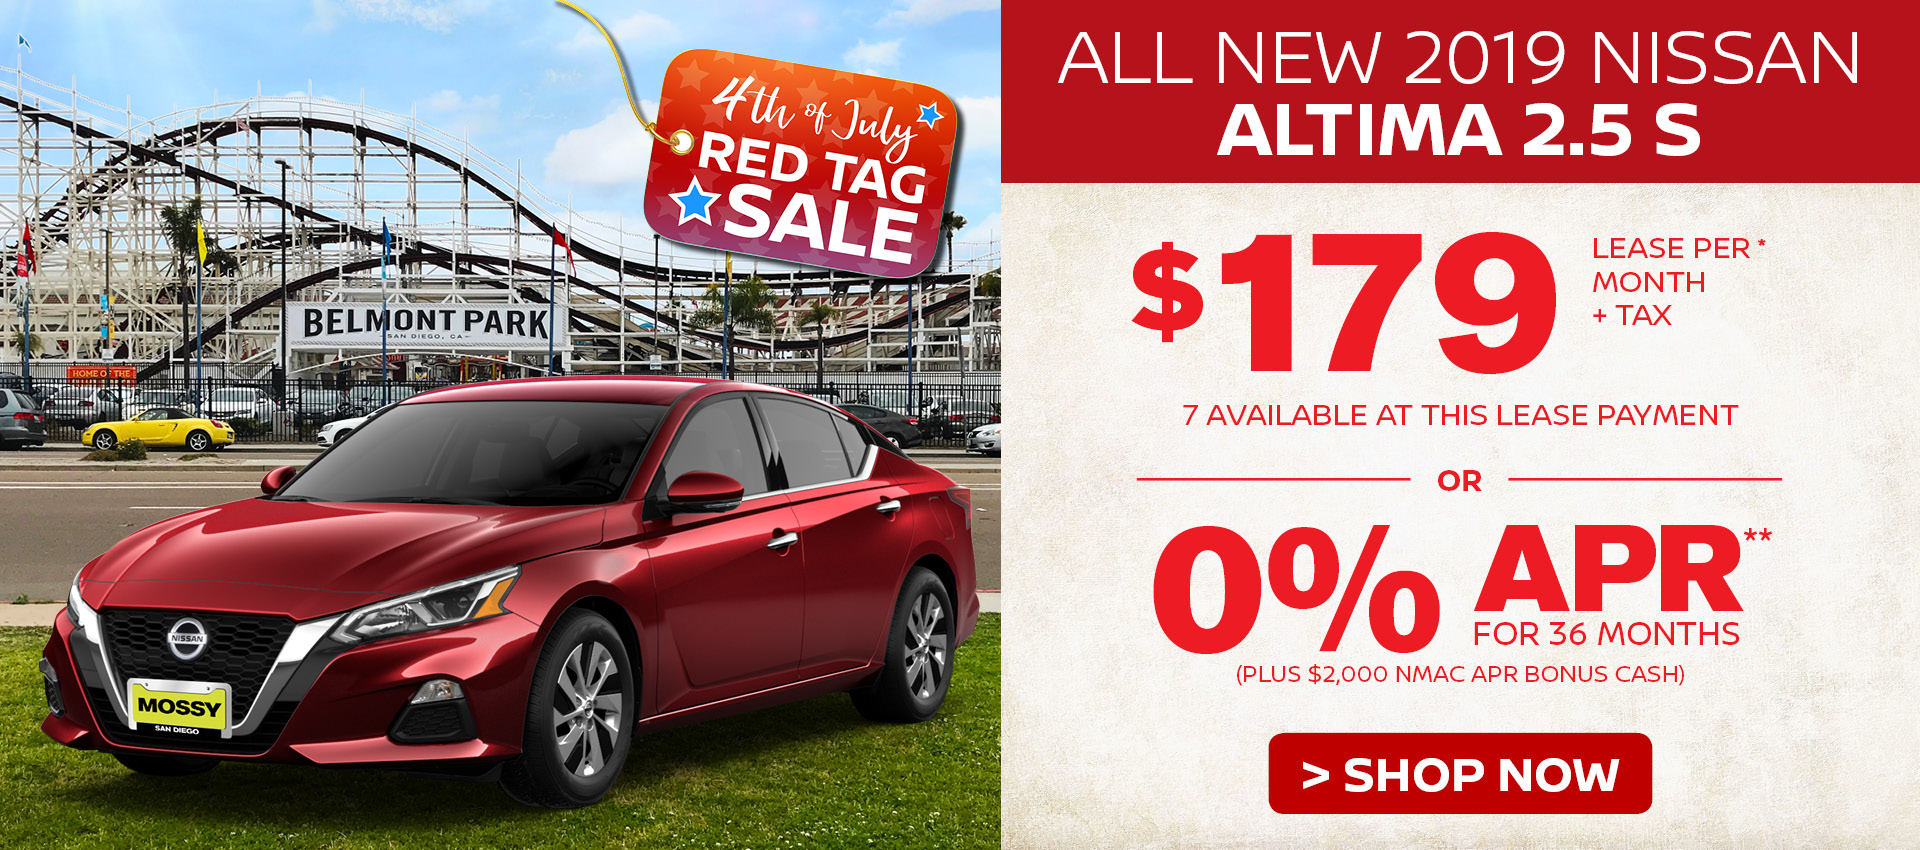 Mossy Nissan - Nissan Altima $179 Lease HP